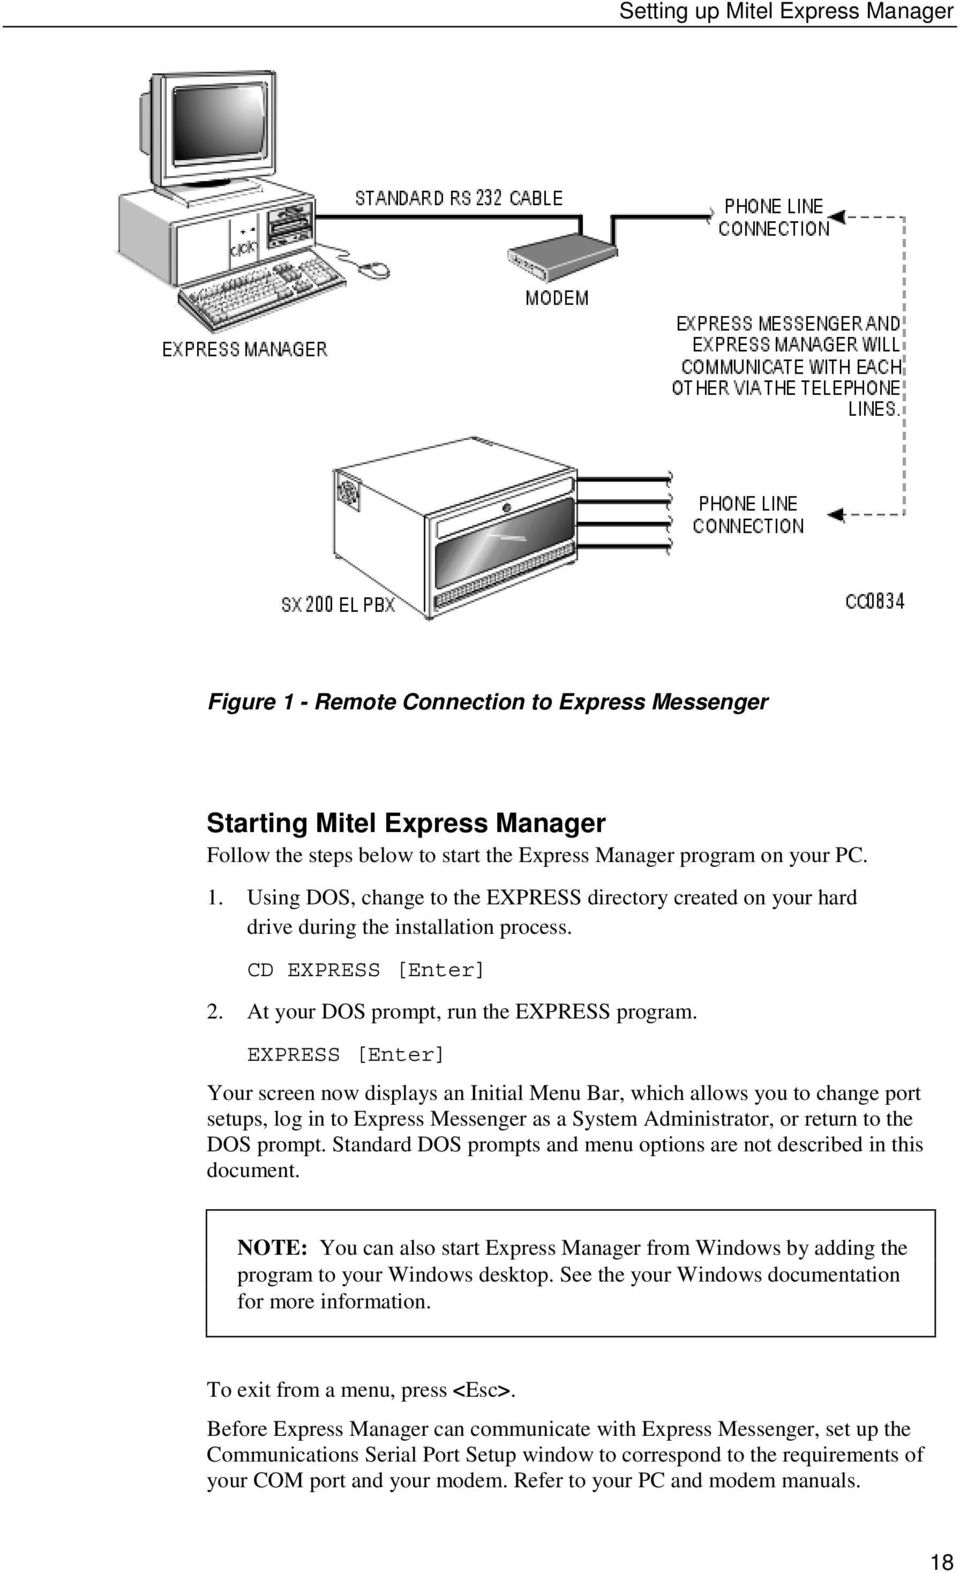 EXPRESS [Enter] Your screen now displays an Initial Menu Bar, which allows you to change port setups, log in to Express Messenger as a System Administrator, or return to the DOS prompt.